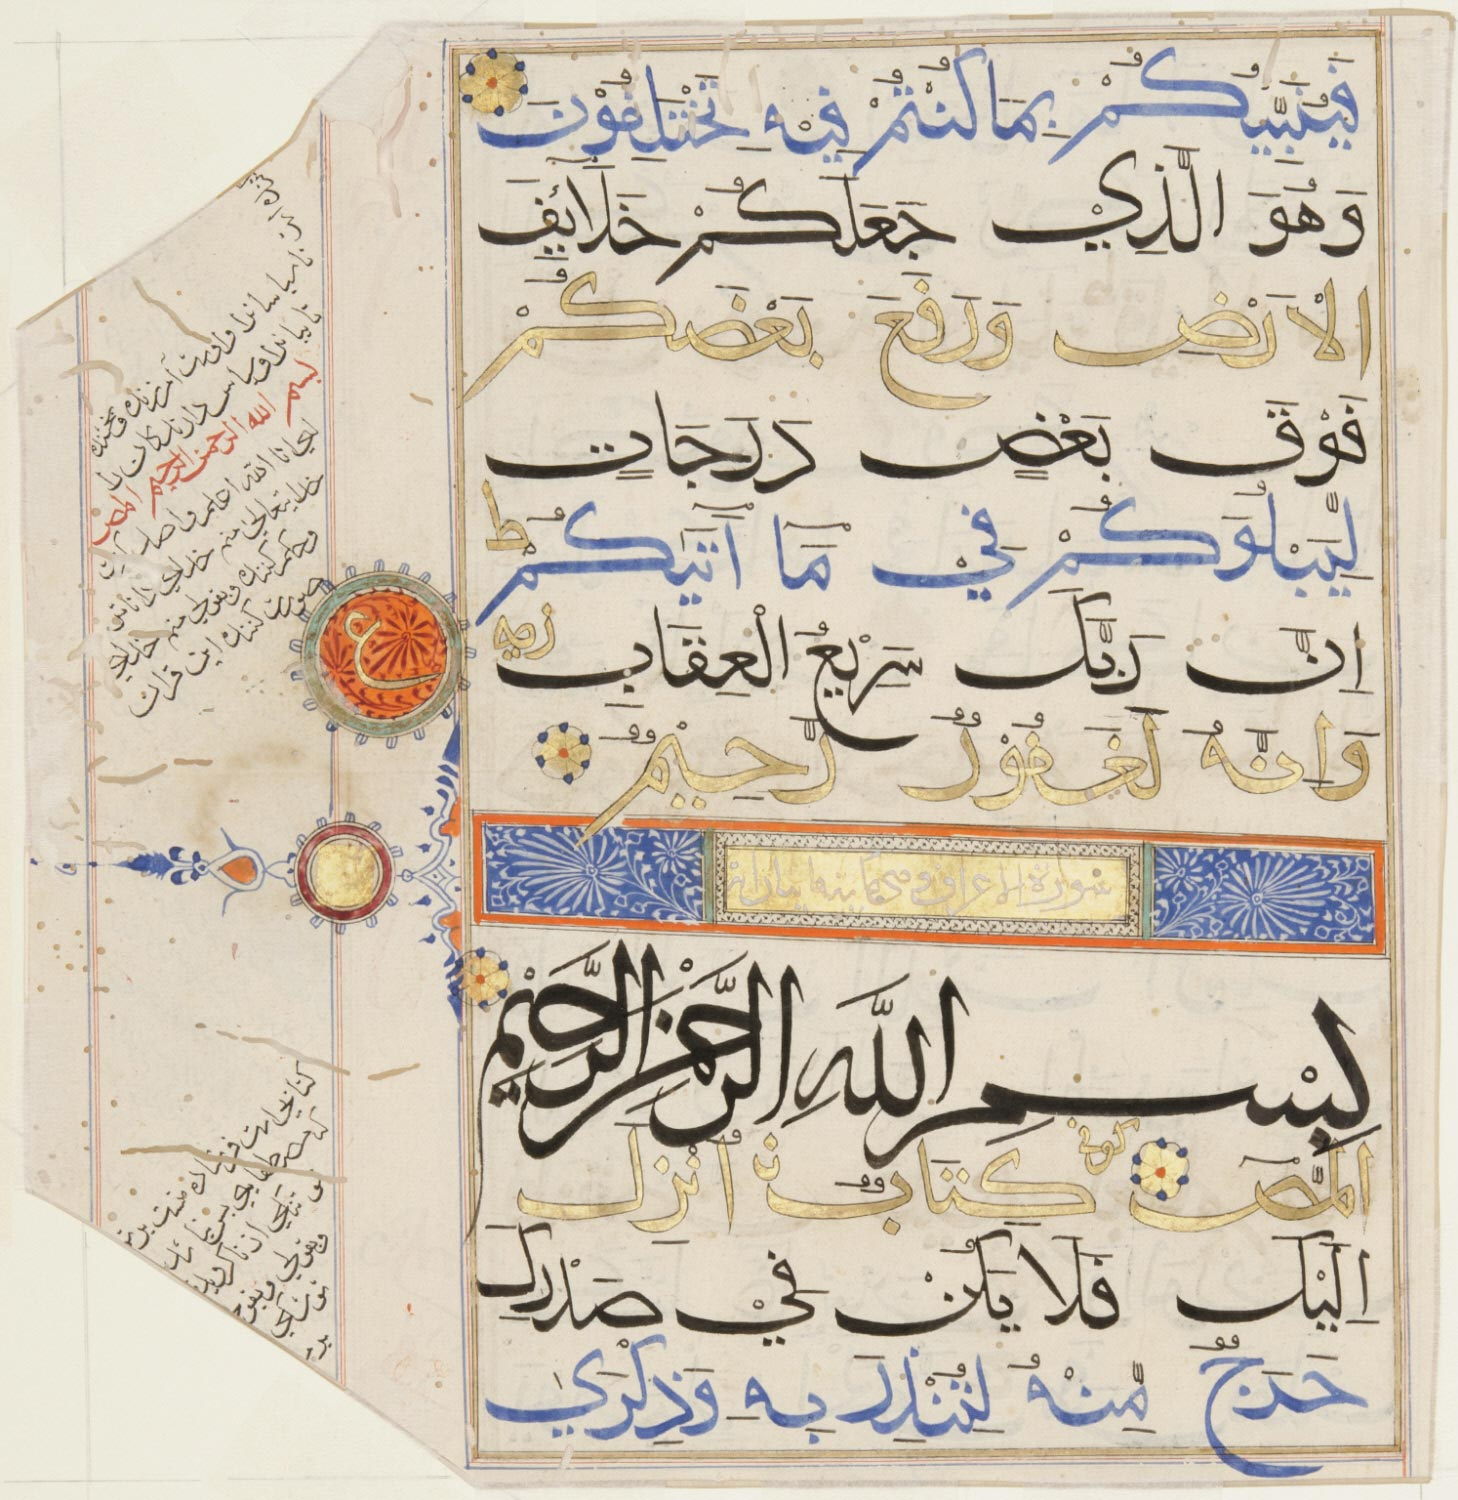 A Folio from a Qur'an